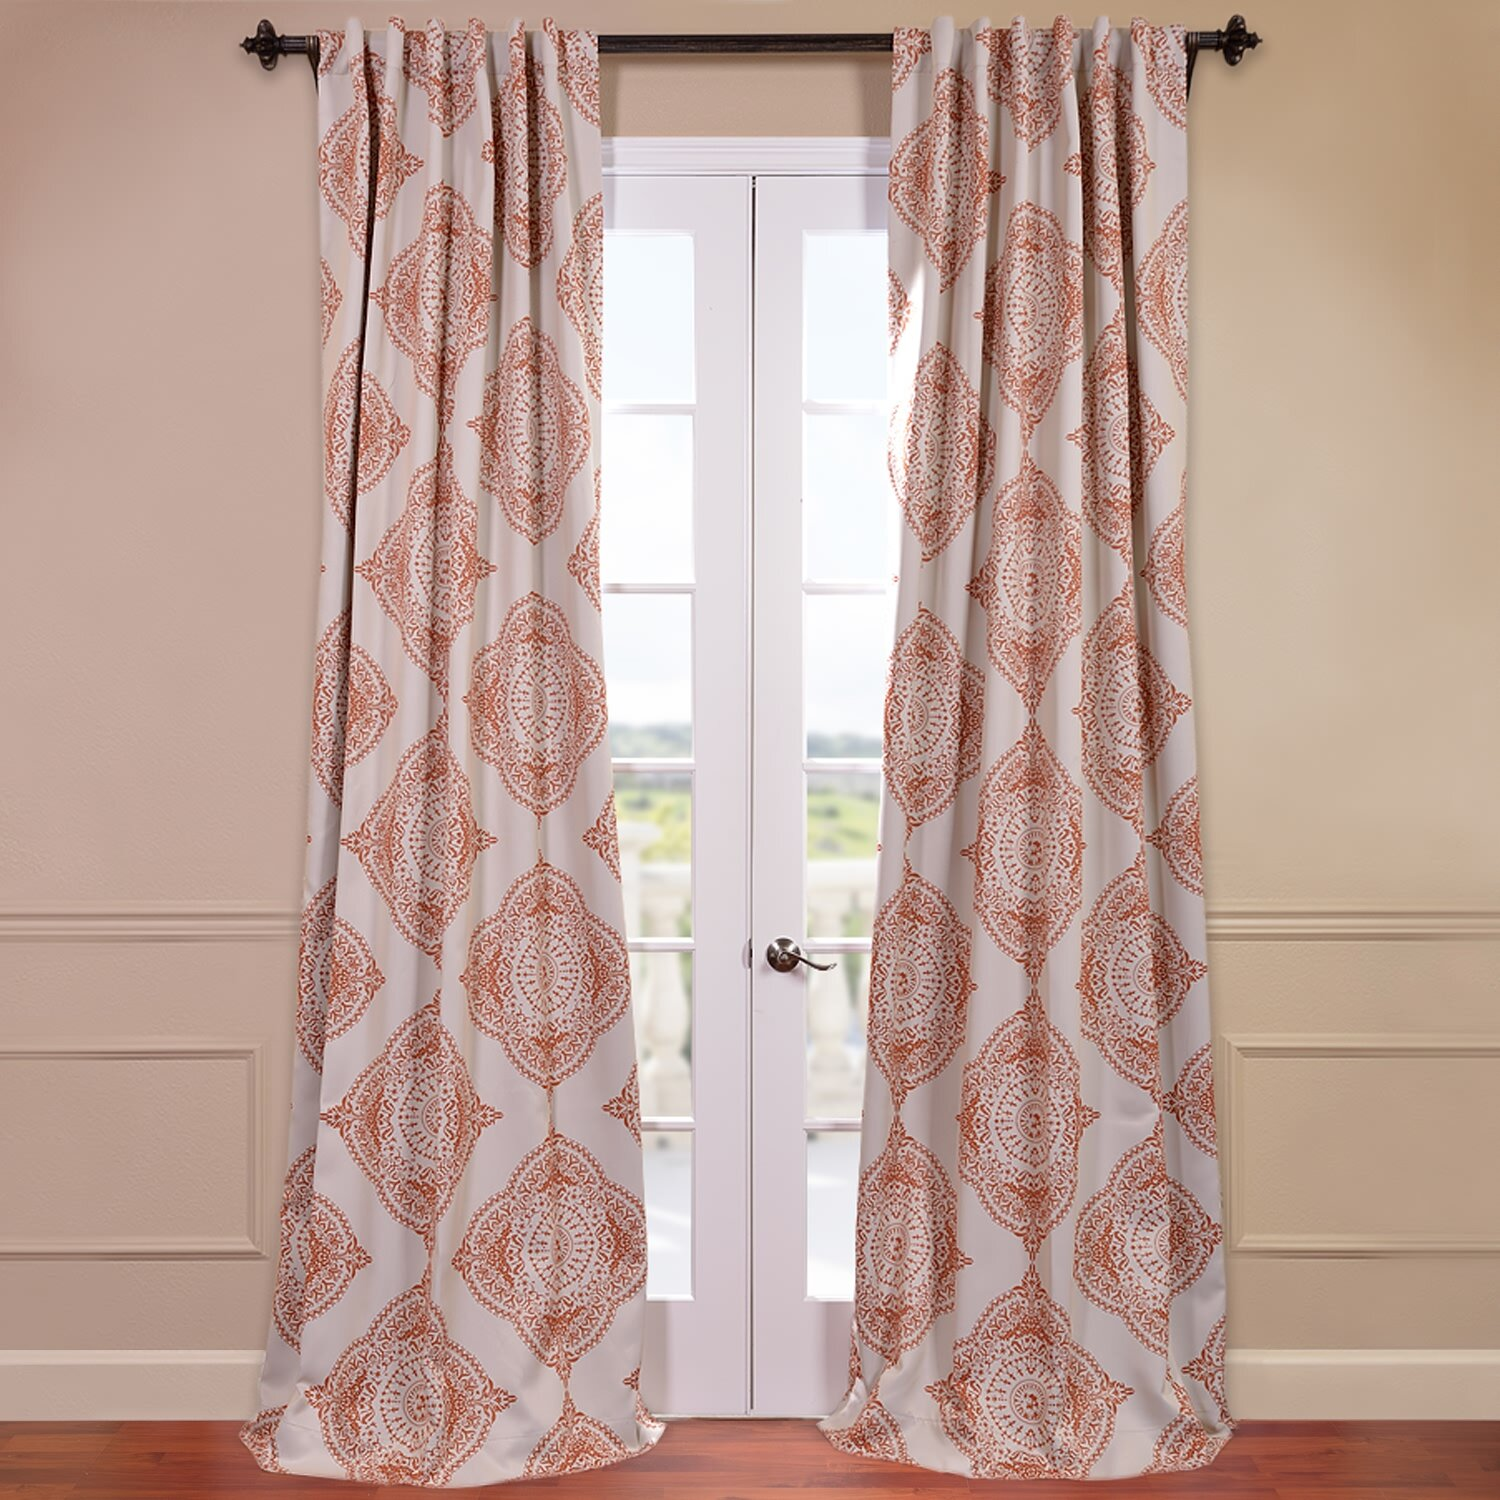 Black And White Color Block Curtains Black and White Damask Pattern